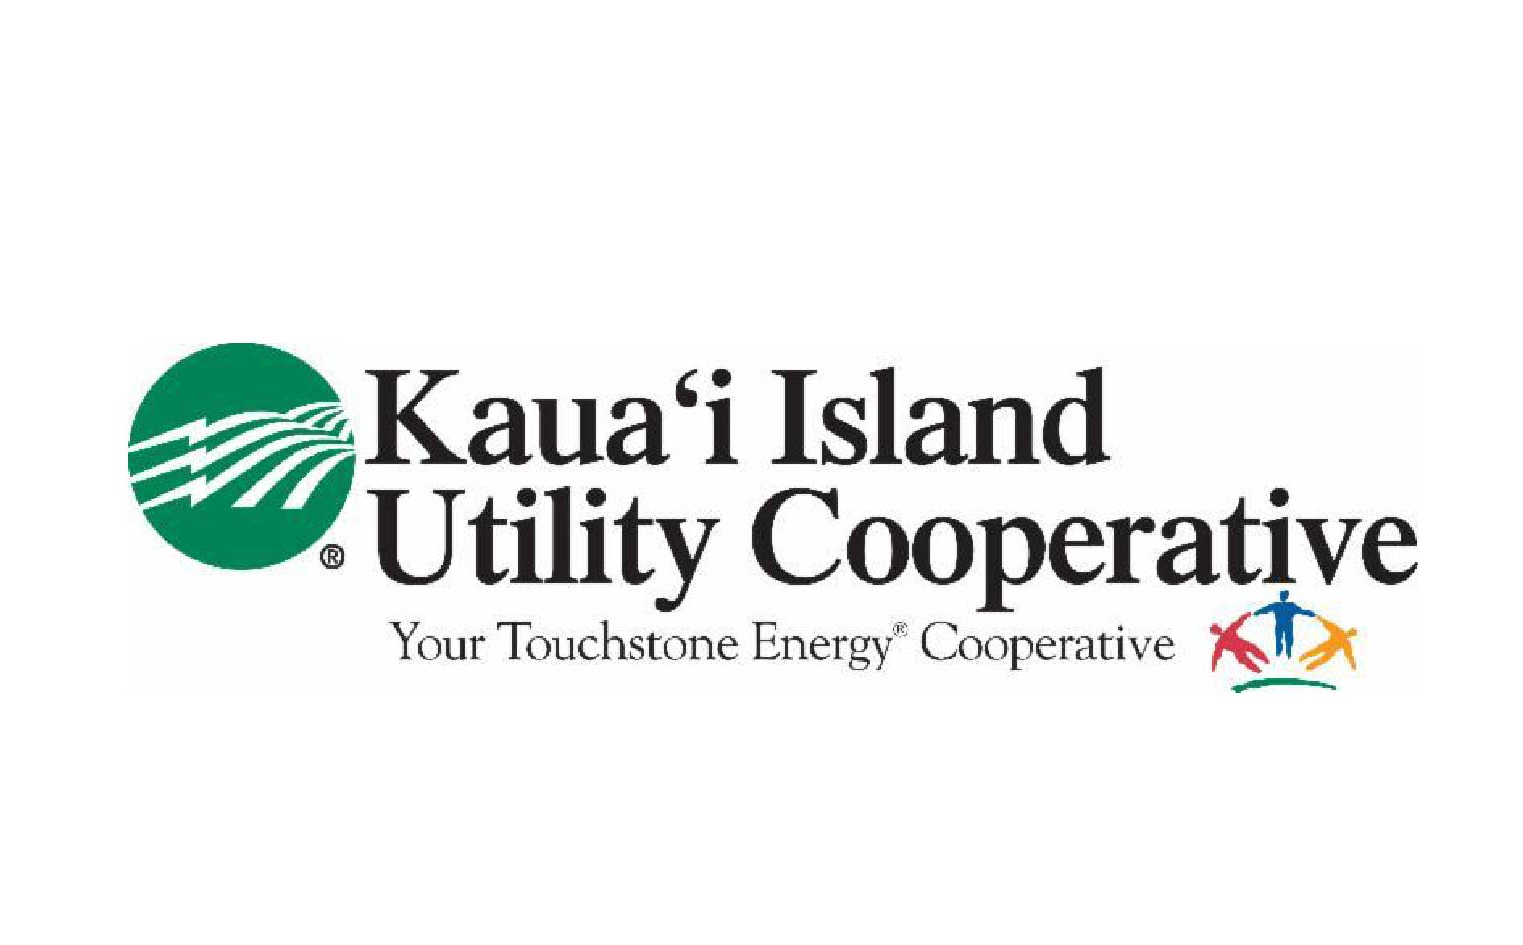 David Bissell - President and CEOKauai Island Utility Cooperative